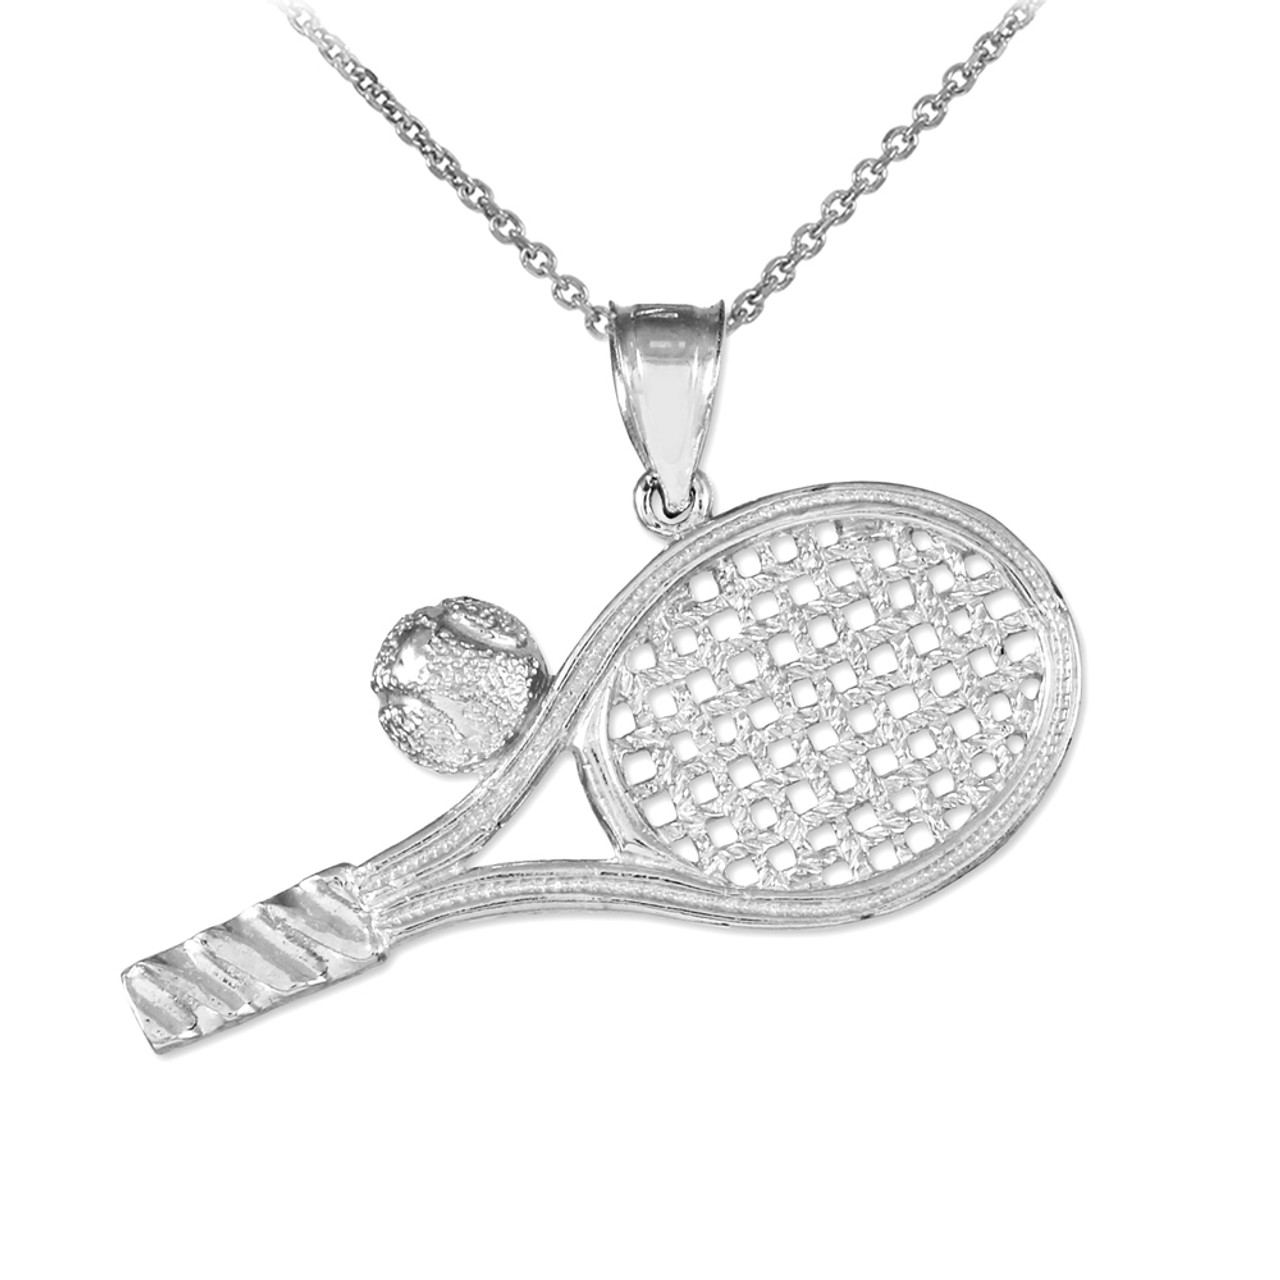 White gold tennis racquet and ball pendant white gold tennis racquet and ball pendant necklace mozeypictures Gallery